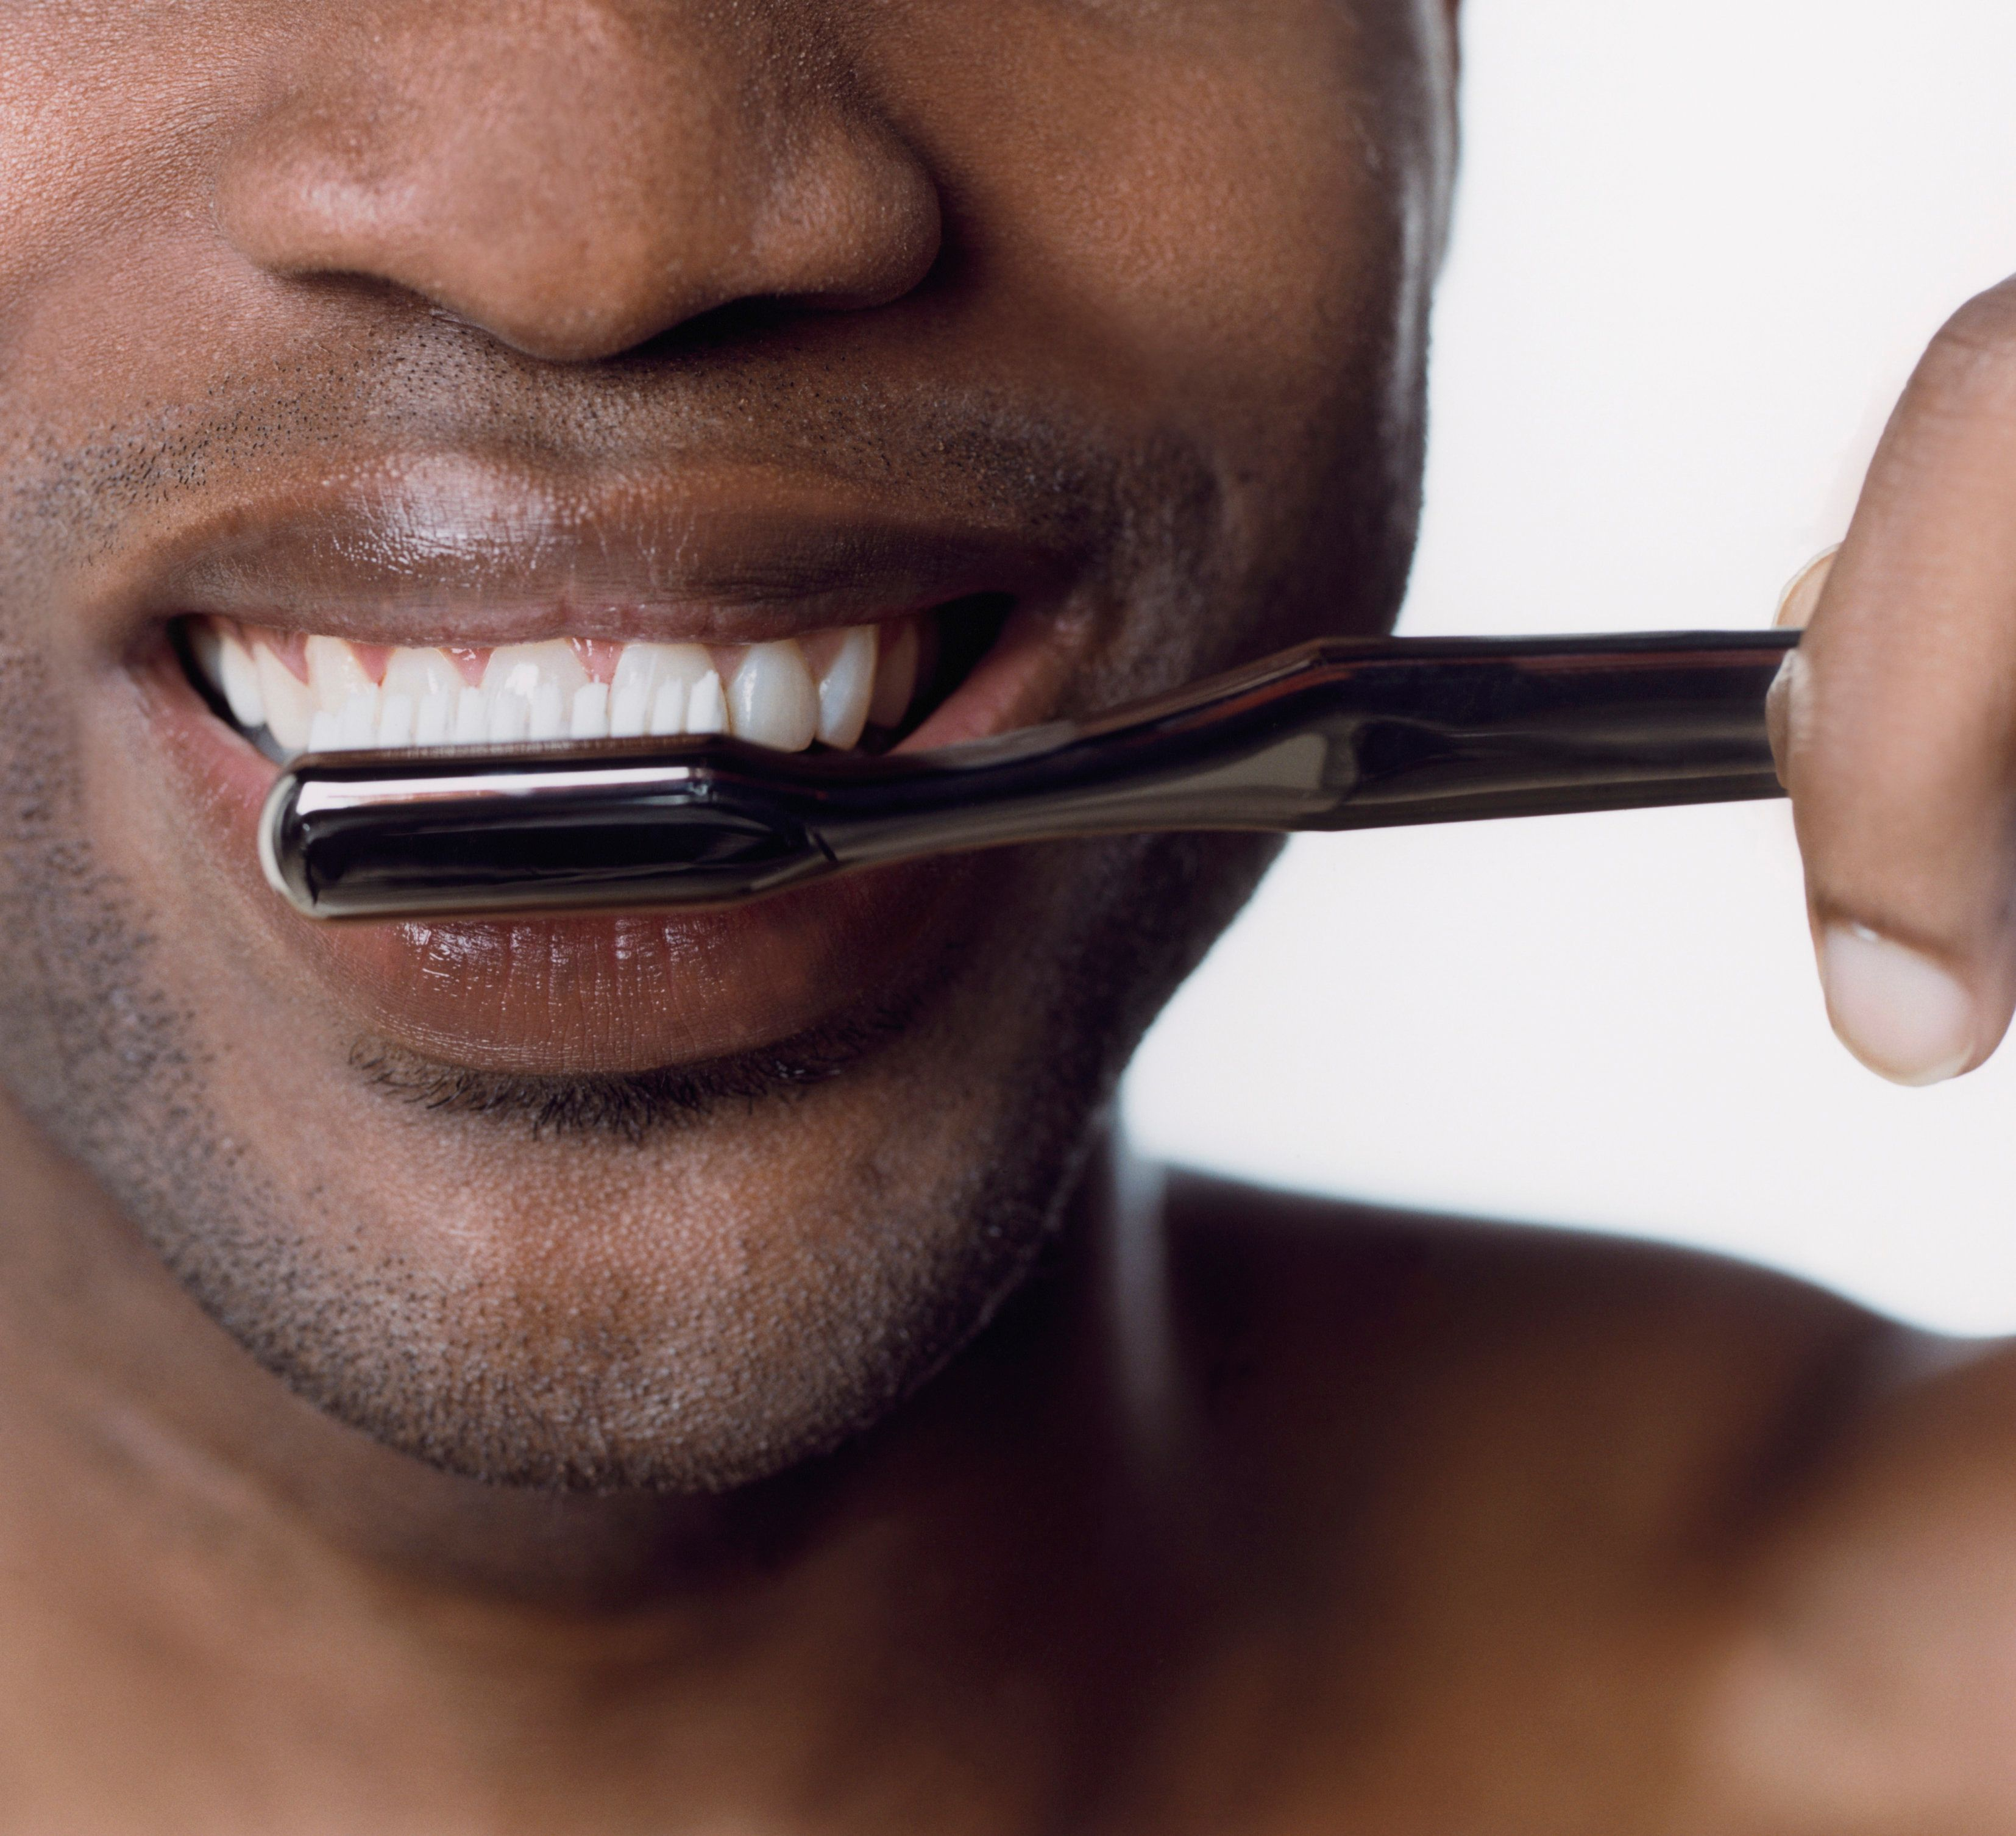 Believe it or not, there is a right way to cleanyour teeth.